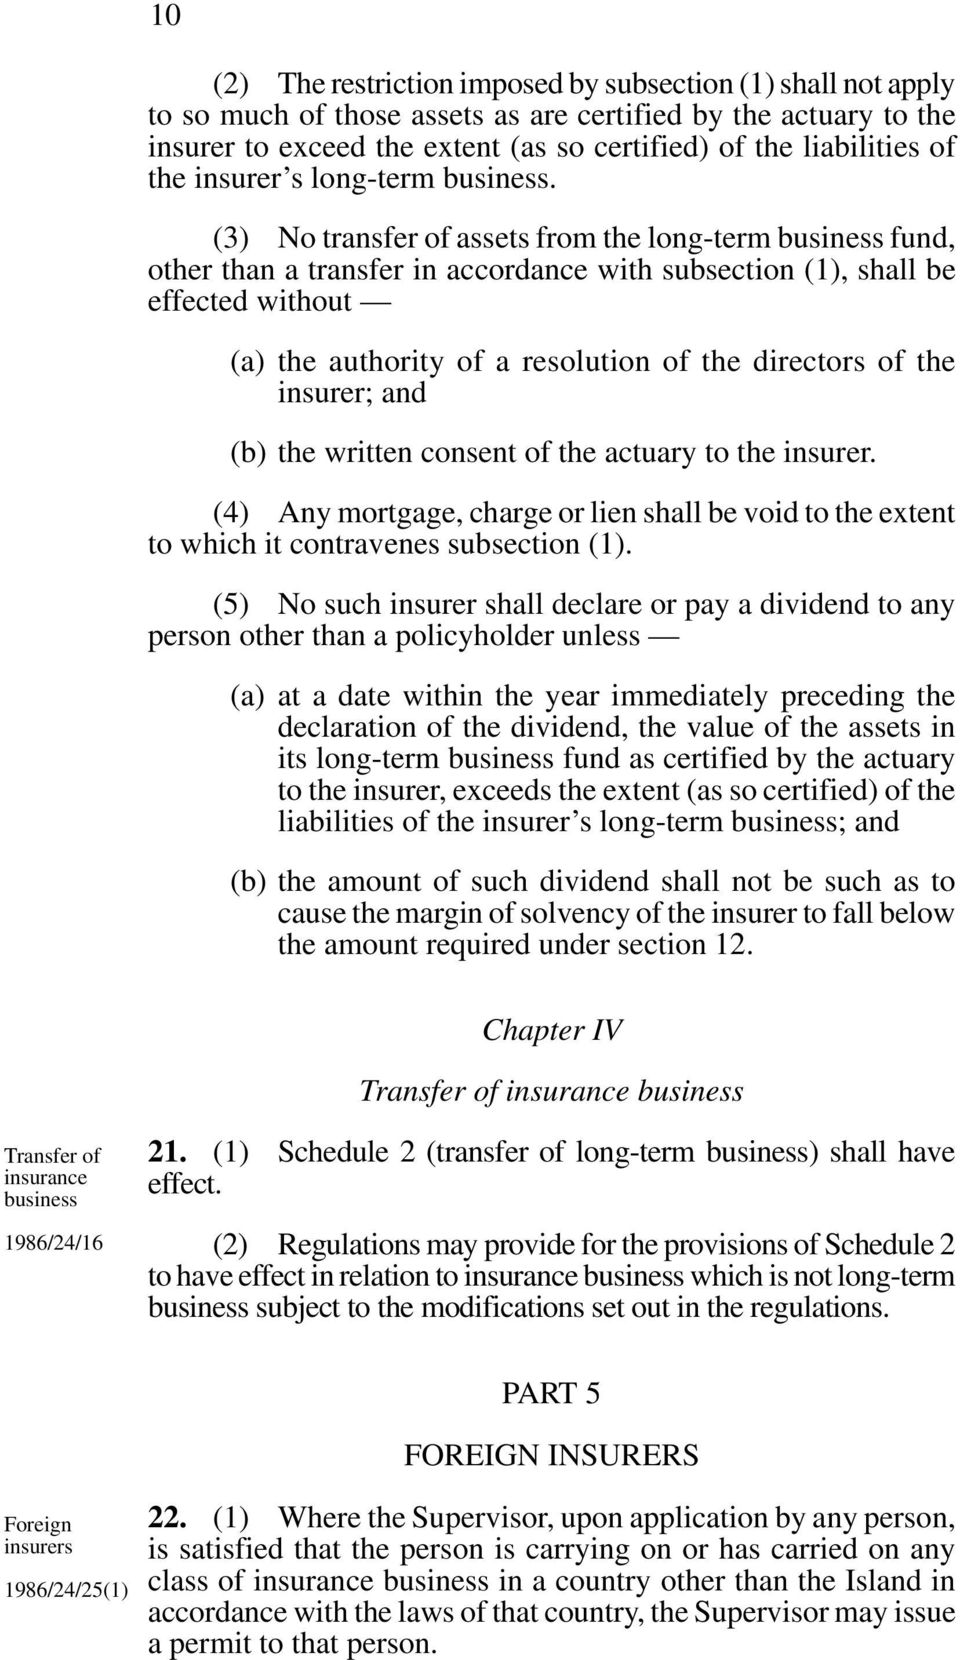 (3) No transfer of assets from the long-term business fund, other than a transfer in accordance with subsection (1), shall be effected without (a) the authority of a resolution of the directors of